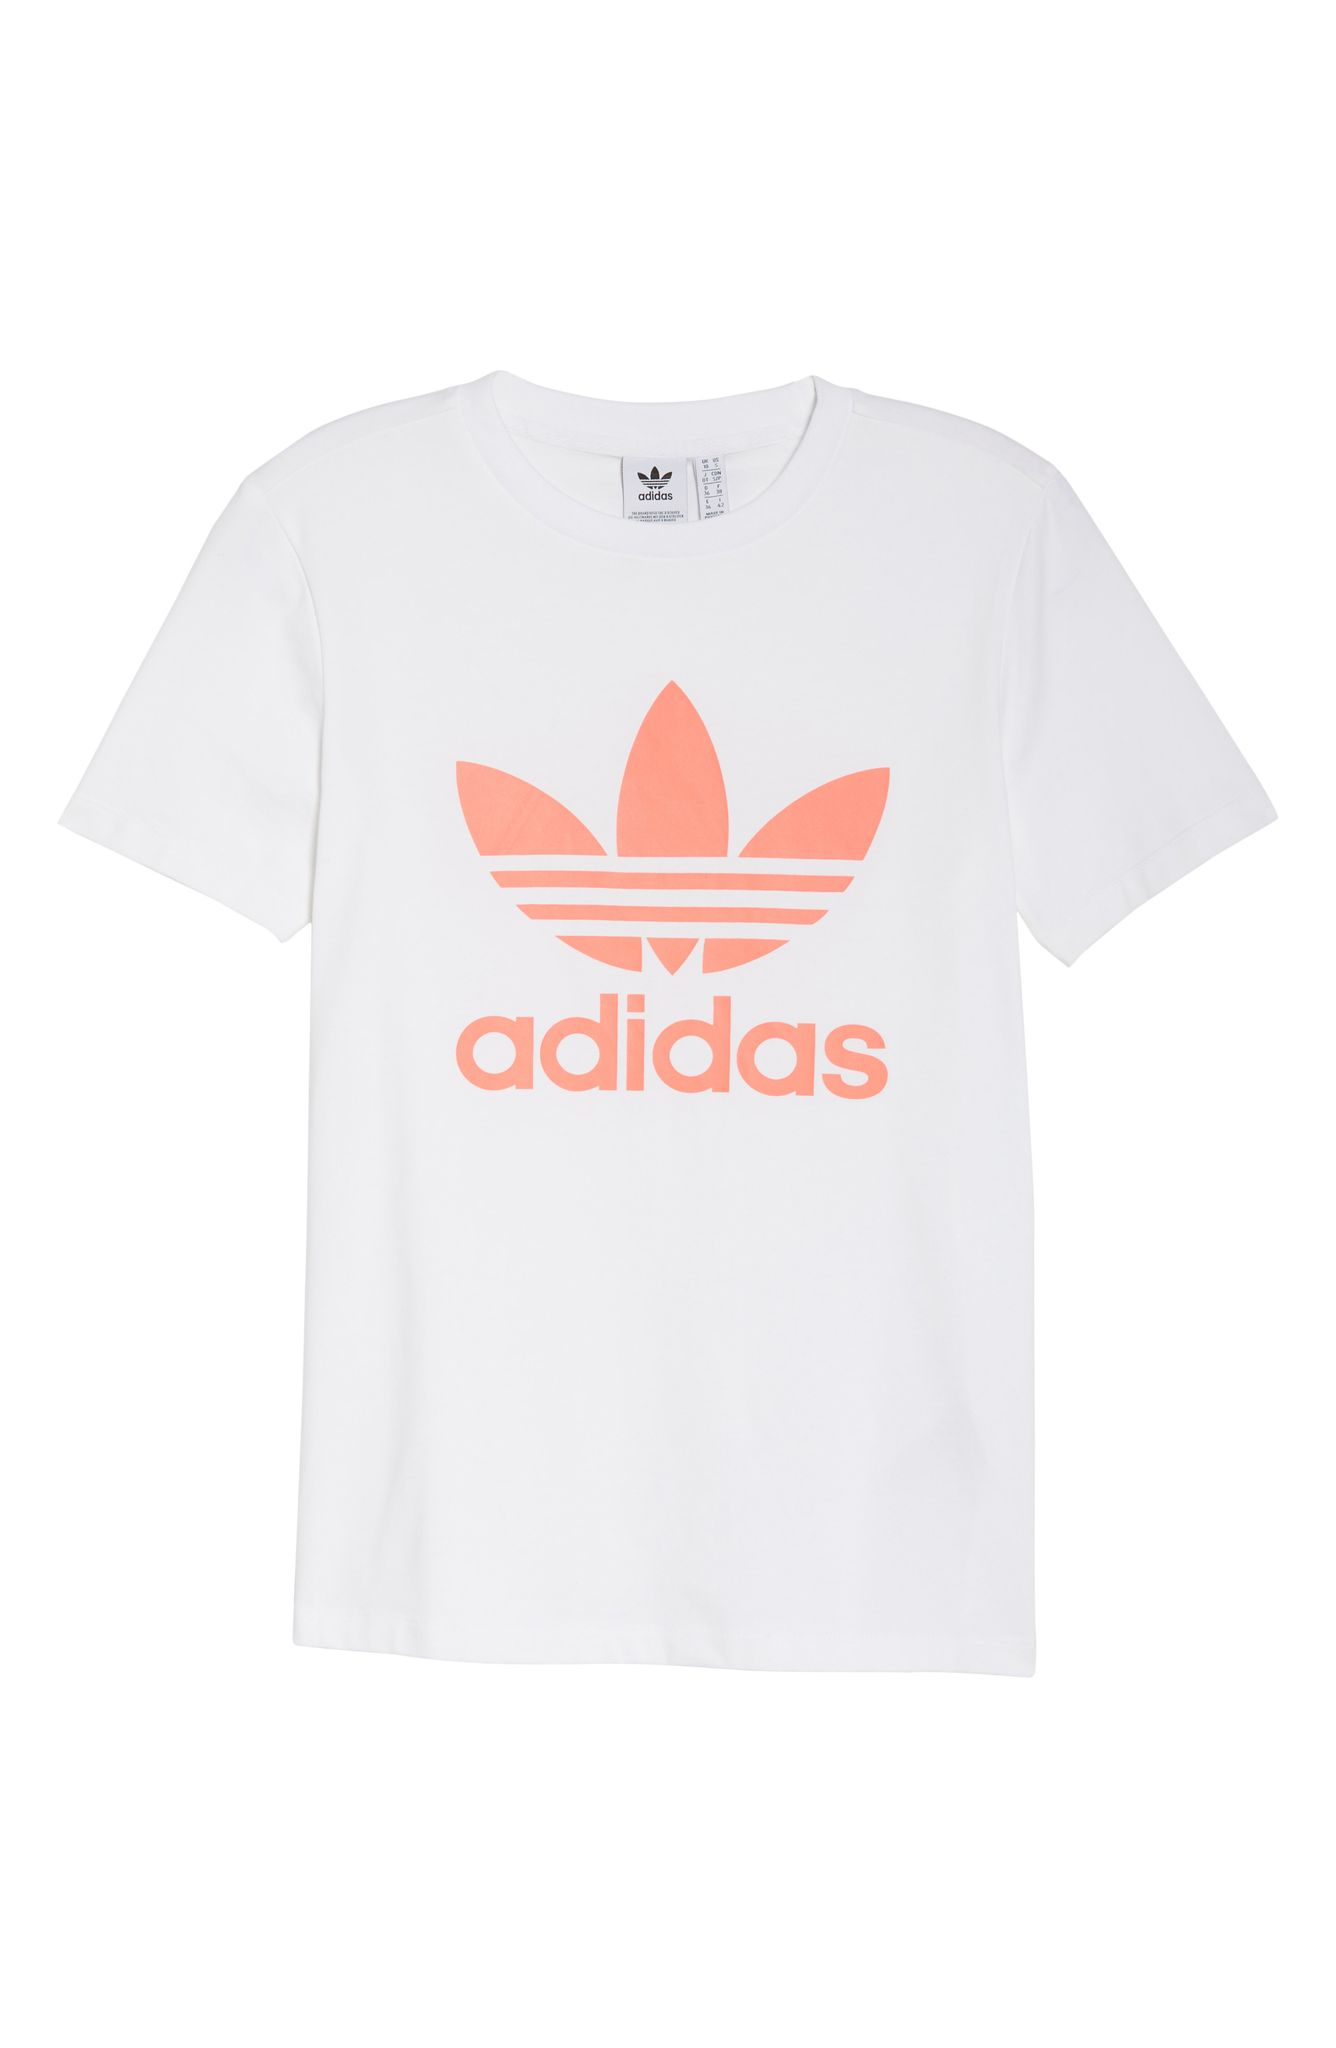 Adidas Trefoil Tee (noramlly $30): NOW $21.90 (Image: Nordstrom){ }